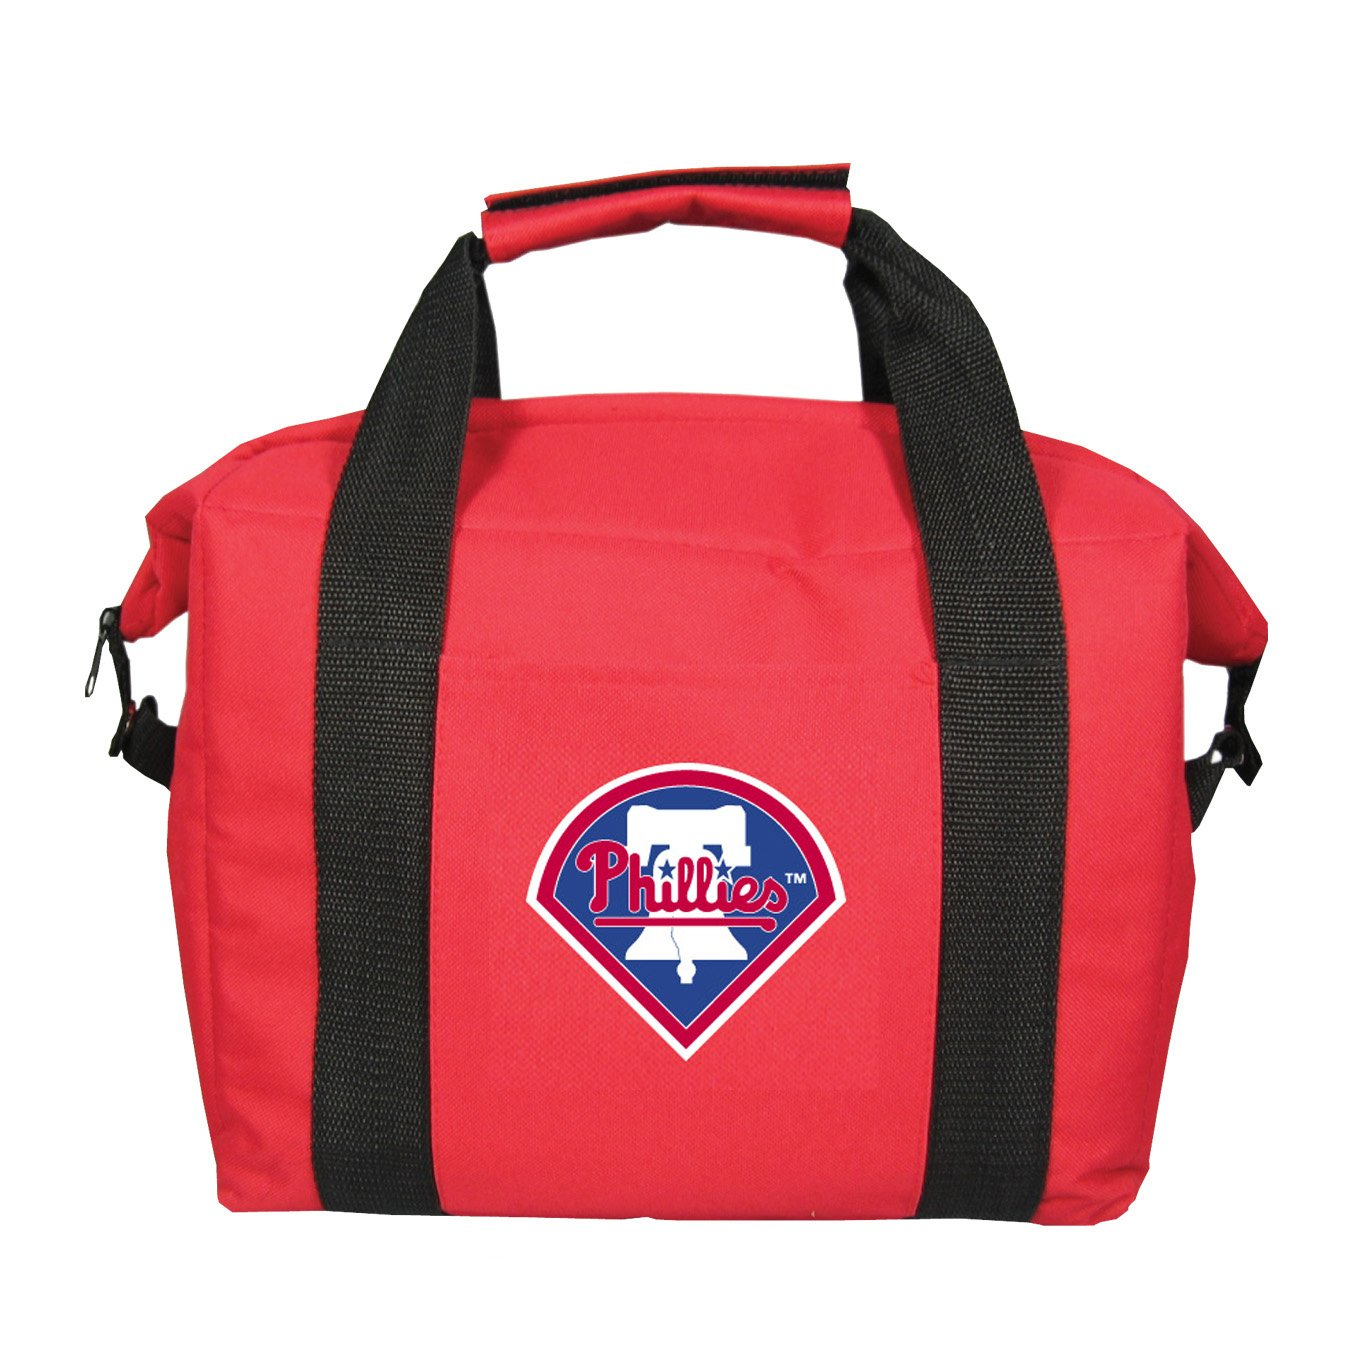 MLB Philadelphia Phillies Soft Sided 12-Pack Cooler Bag